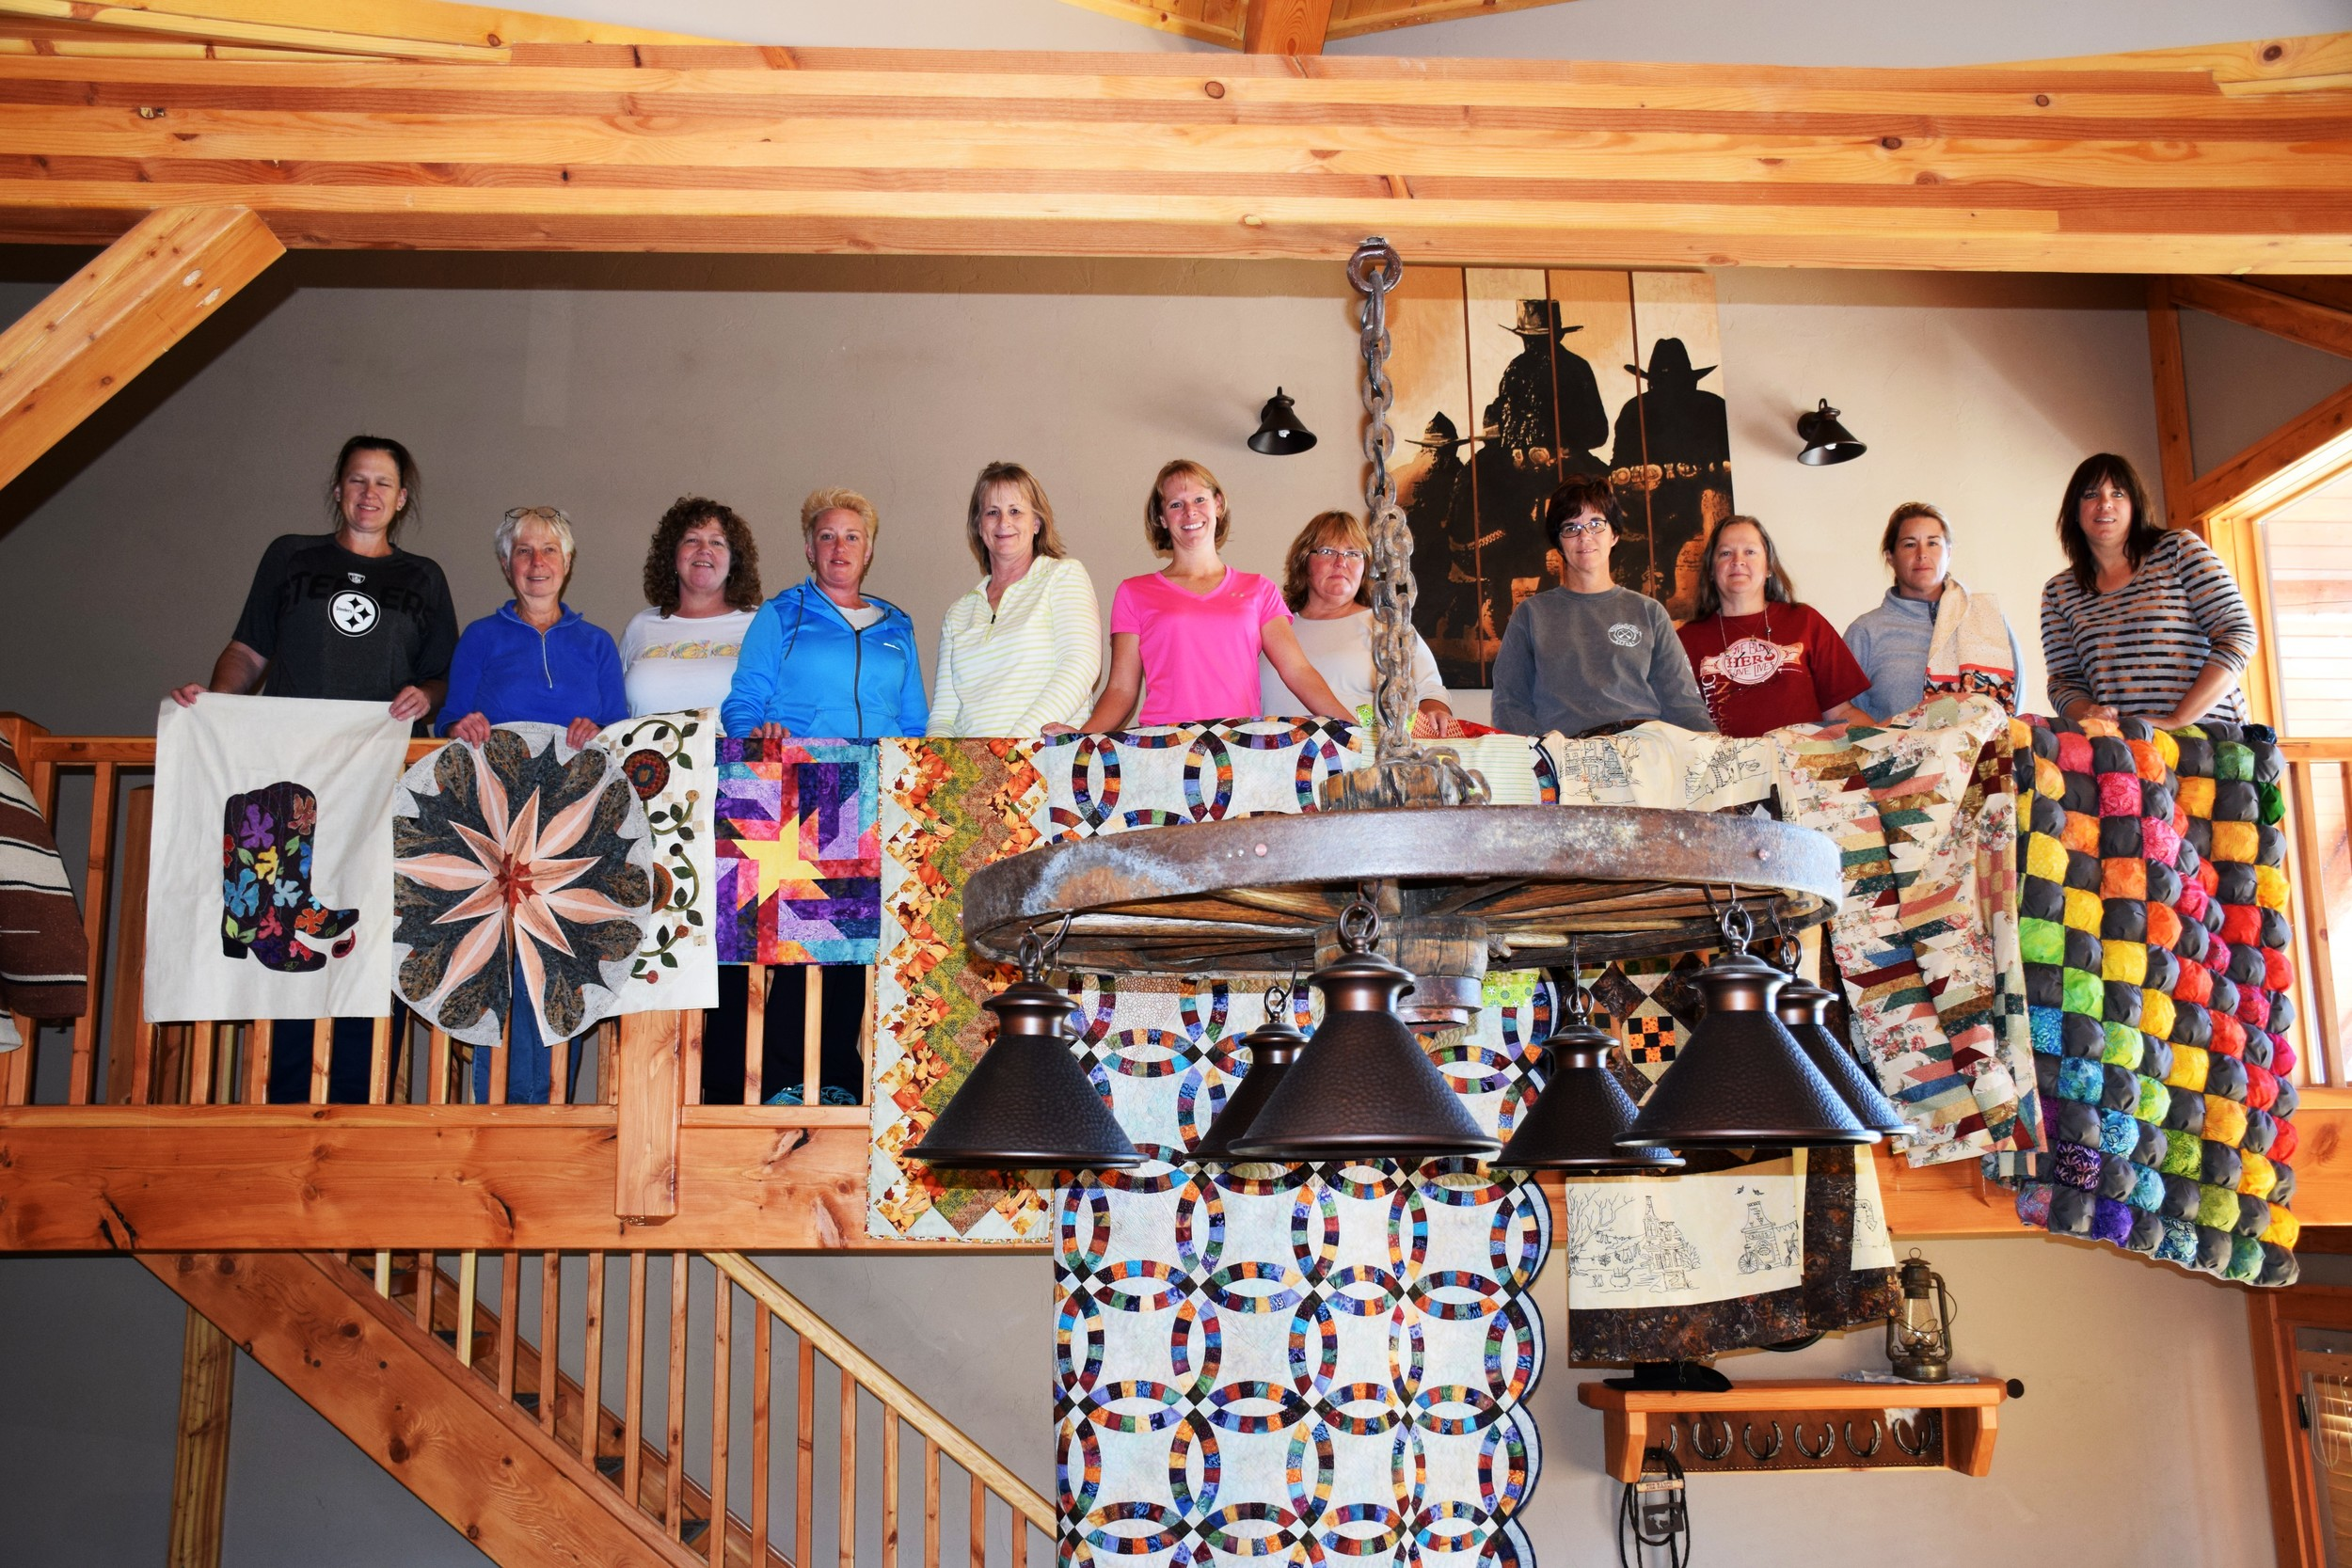 Quilters Retreat 10-11-2015 74-752.JPG